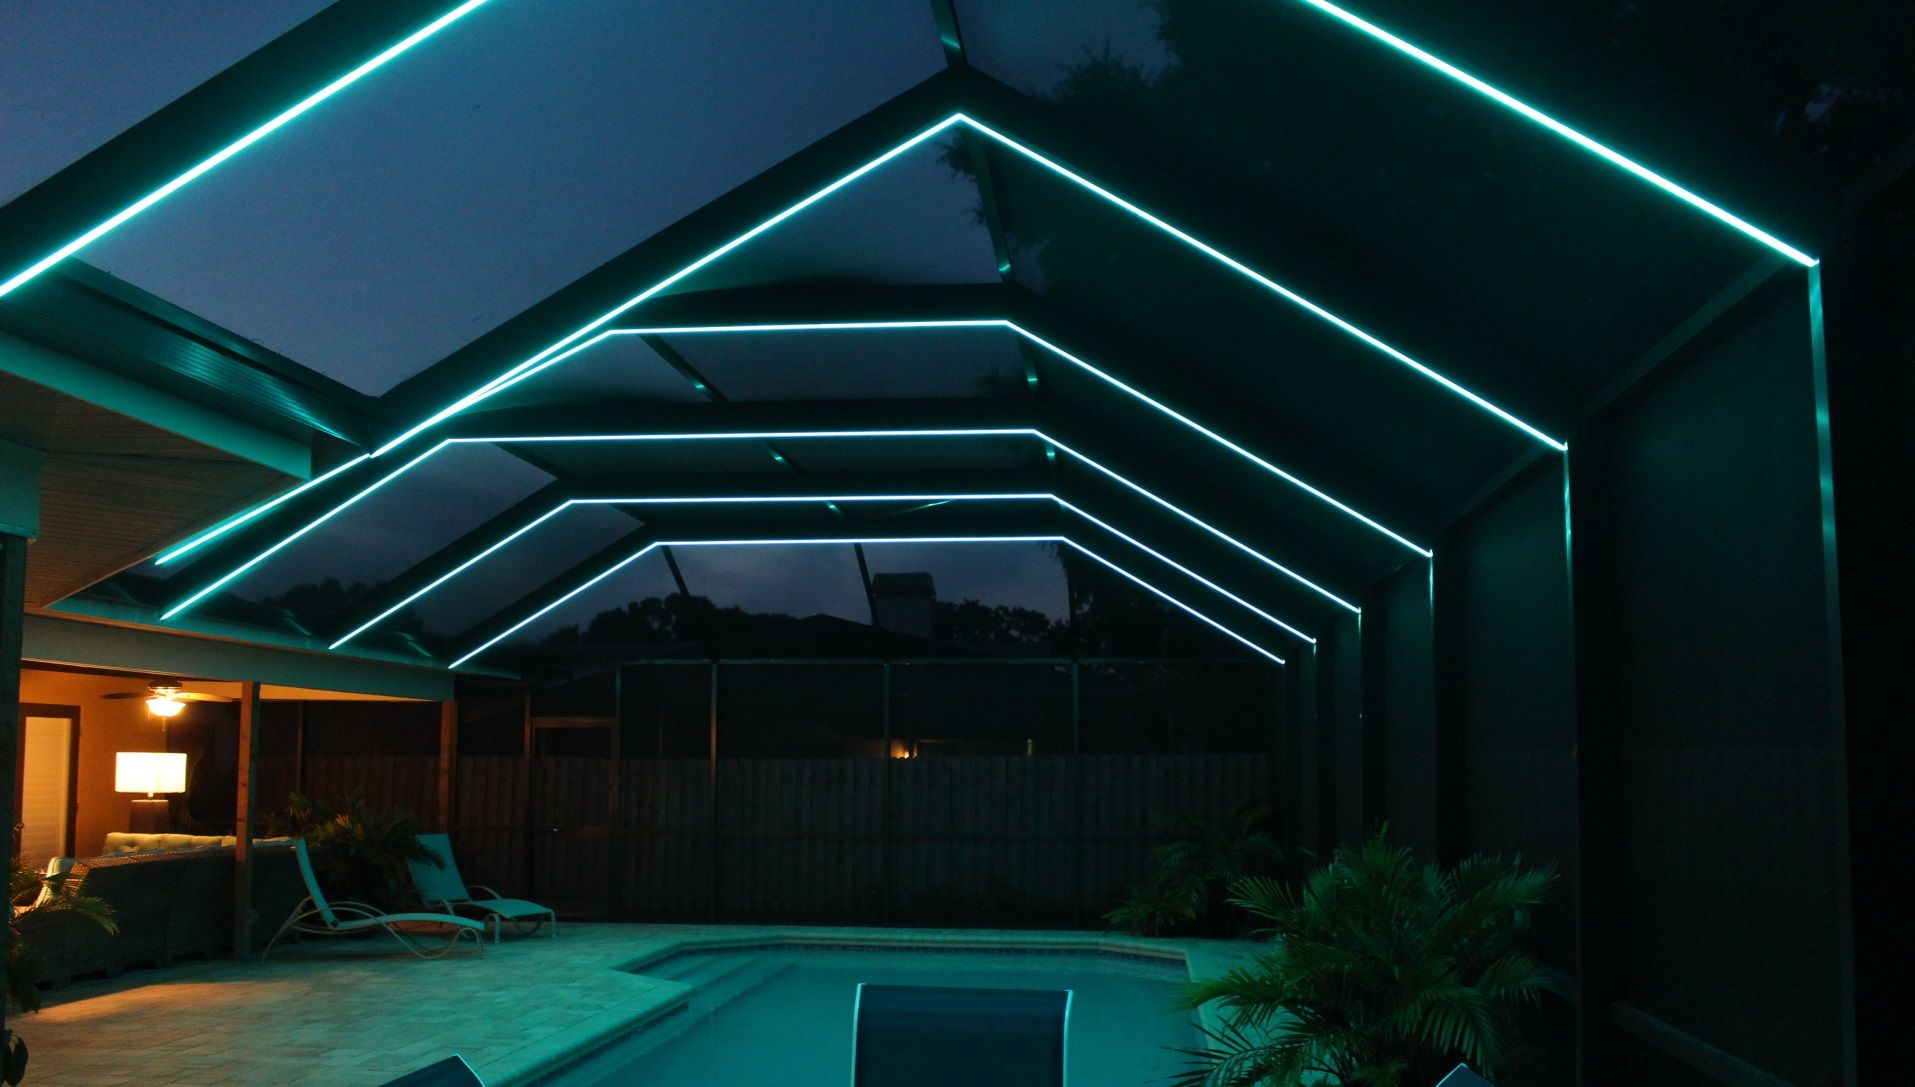 Light Up Your Florida Pool Enclosure With Any Color You Can Imagine White Or Bronze Aluminum Fixtures Are Florida Pool Pool Enclosure Lighting Pool Enclosures